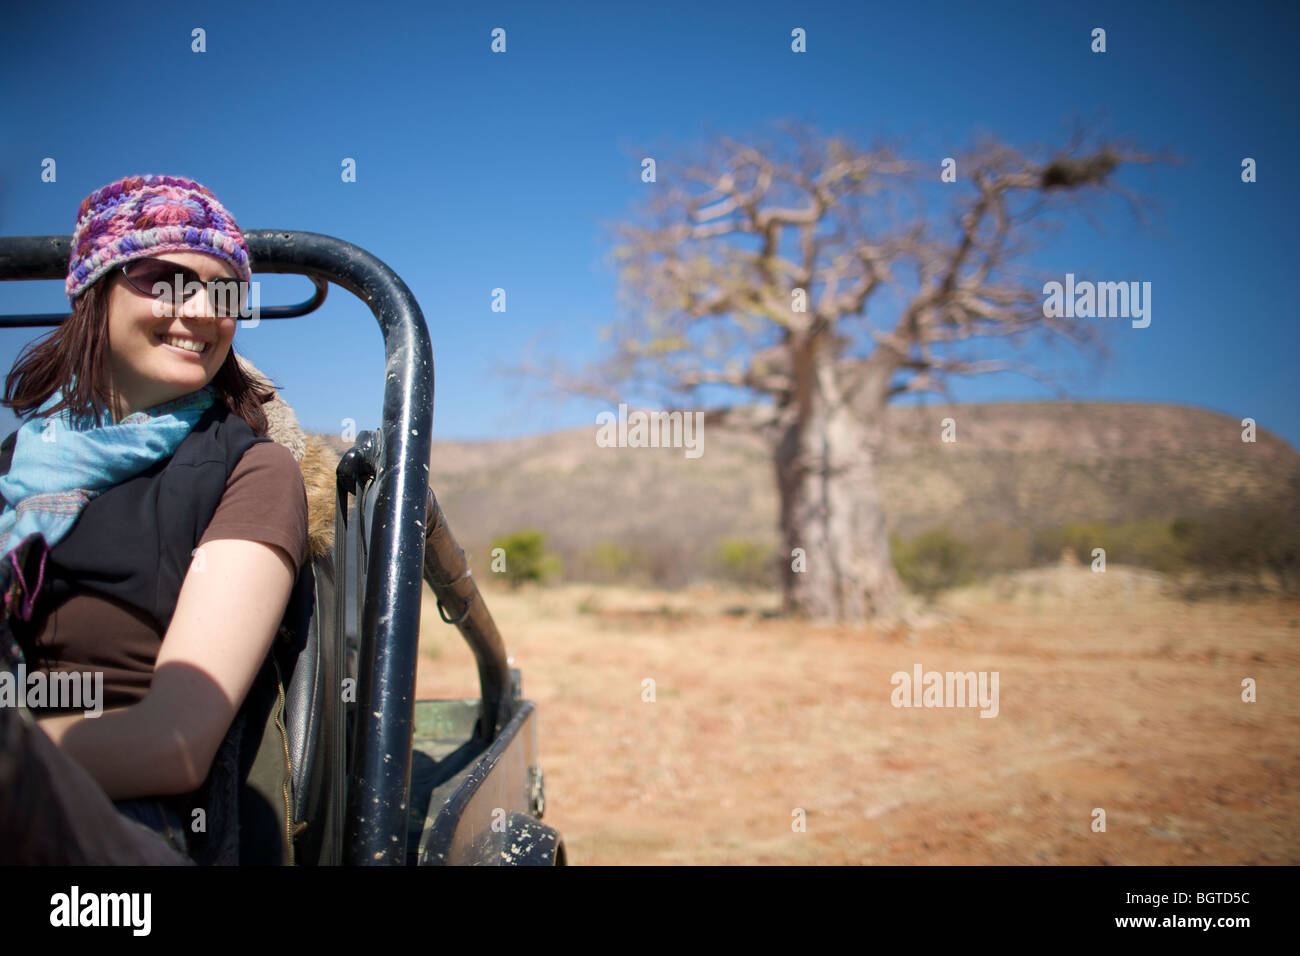 Young woman sitting in motor vehicle with Baobab tree in background, Kunene river area, Kaokoland, Namibia - Stock Image